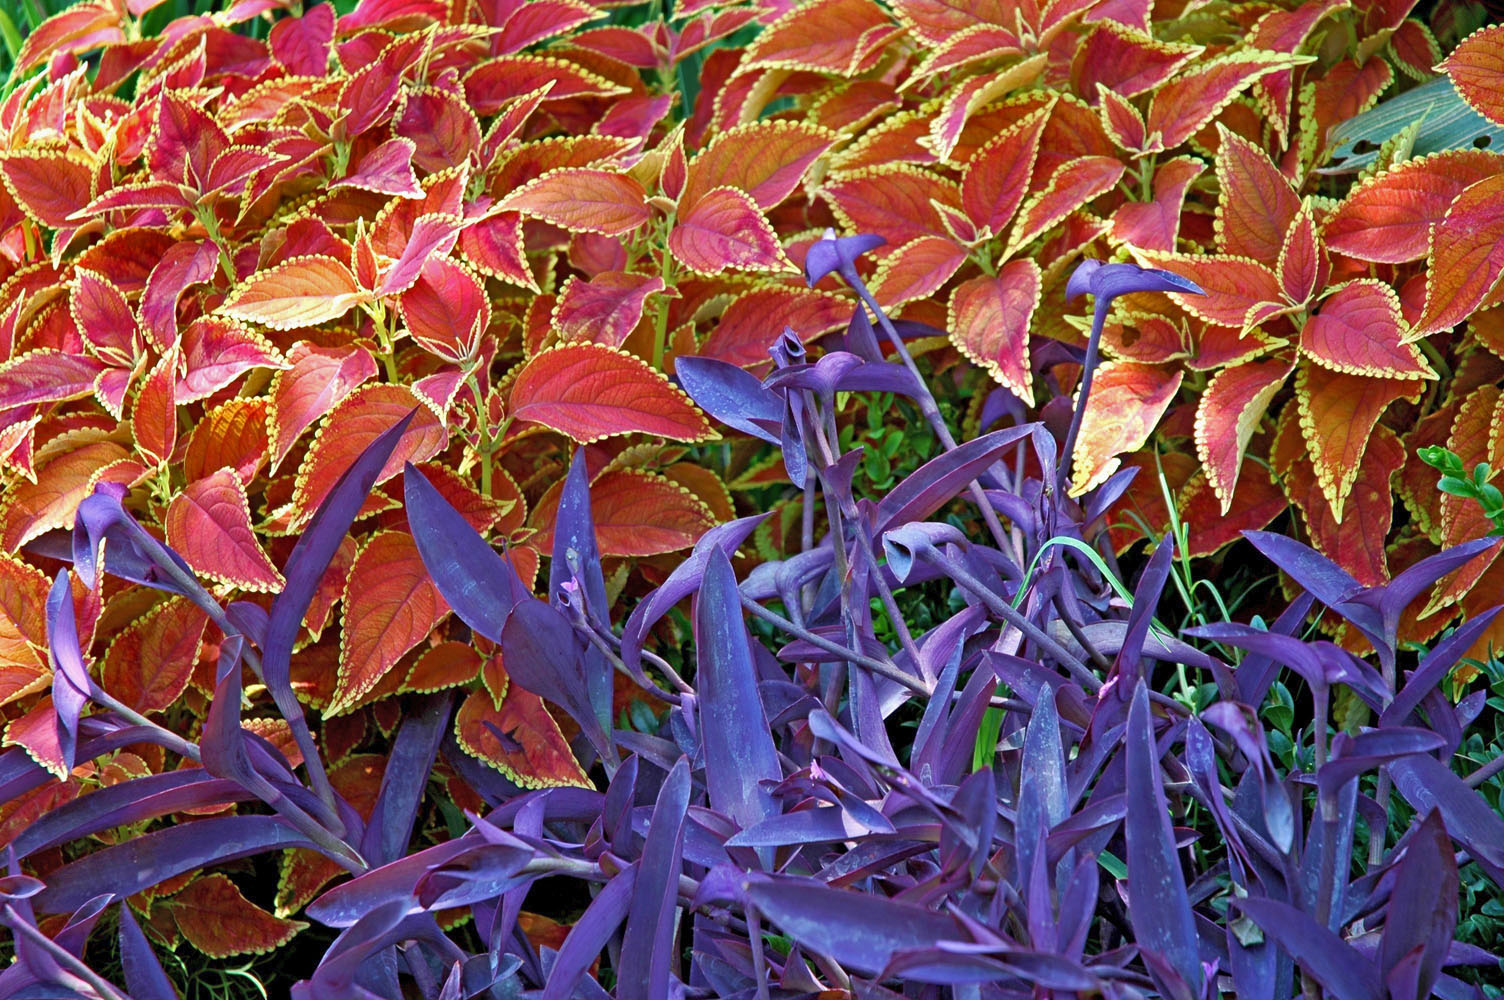 Colorful foliage enlivens gardens mississippi state university the rustic orange coleus produces a striking contrast when planted with the perennial purple heart mightylinksfo